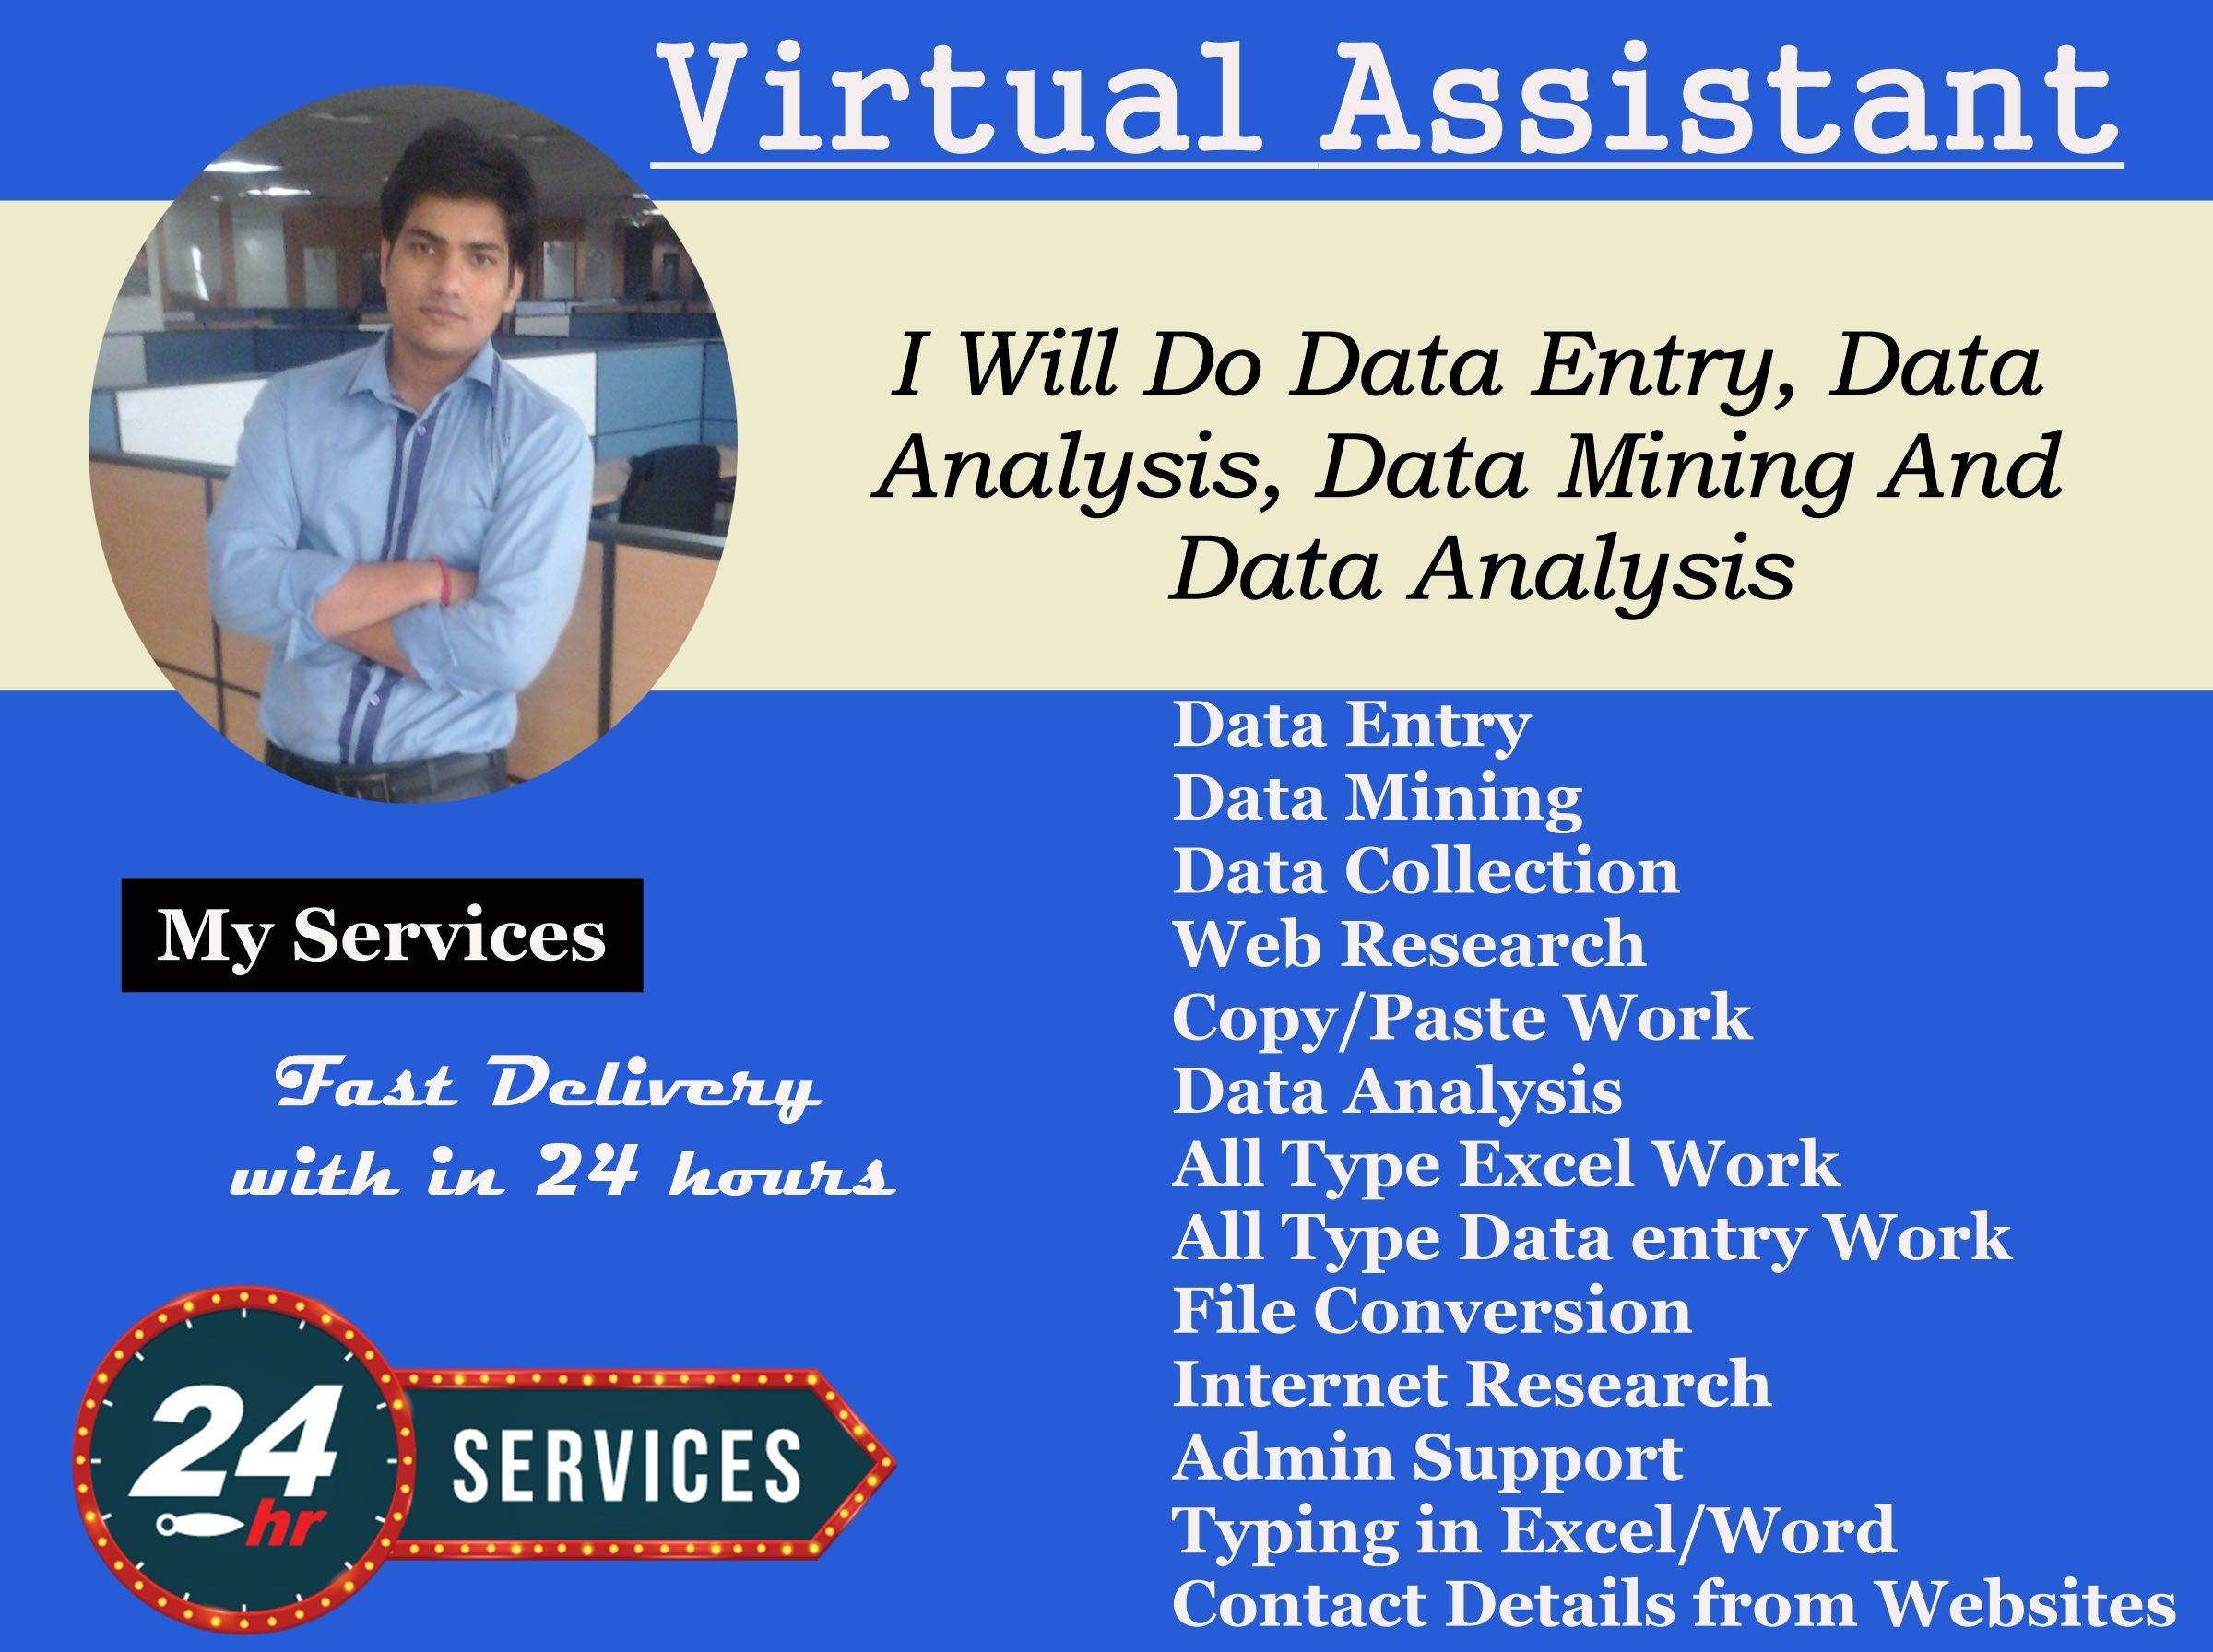 Your Virtual Assistant For Data Entry Data Mining Web Research